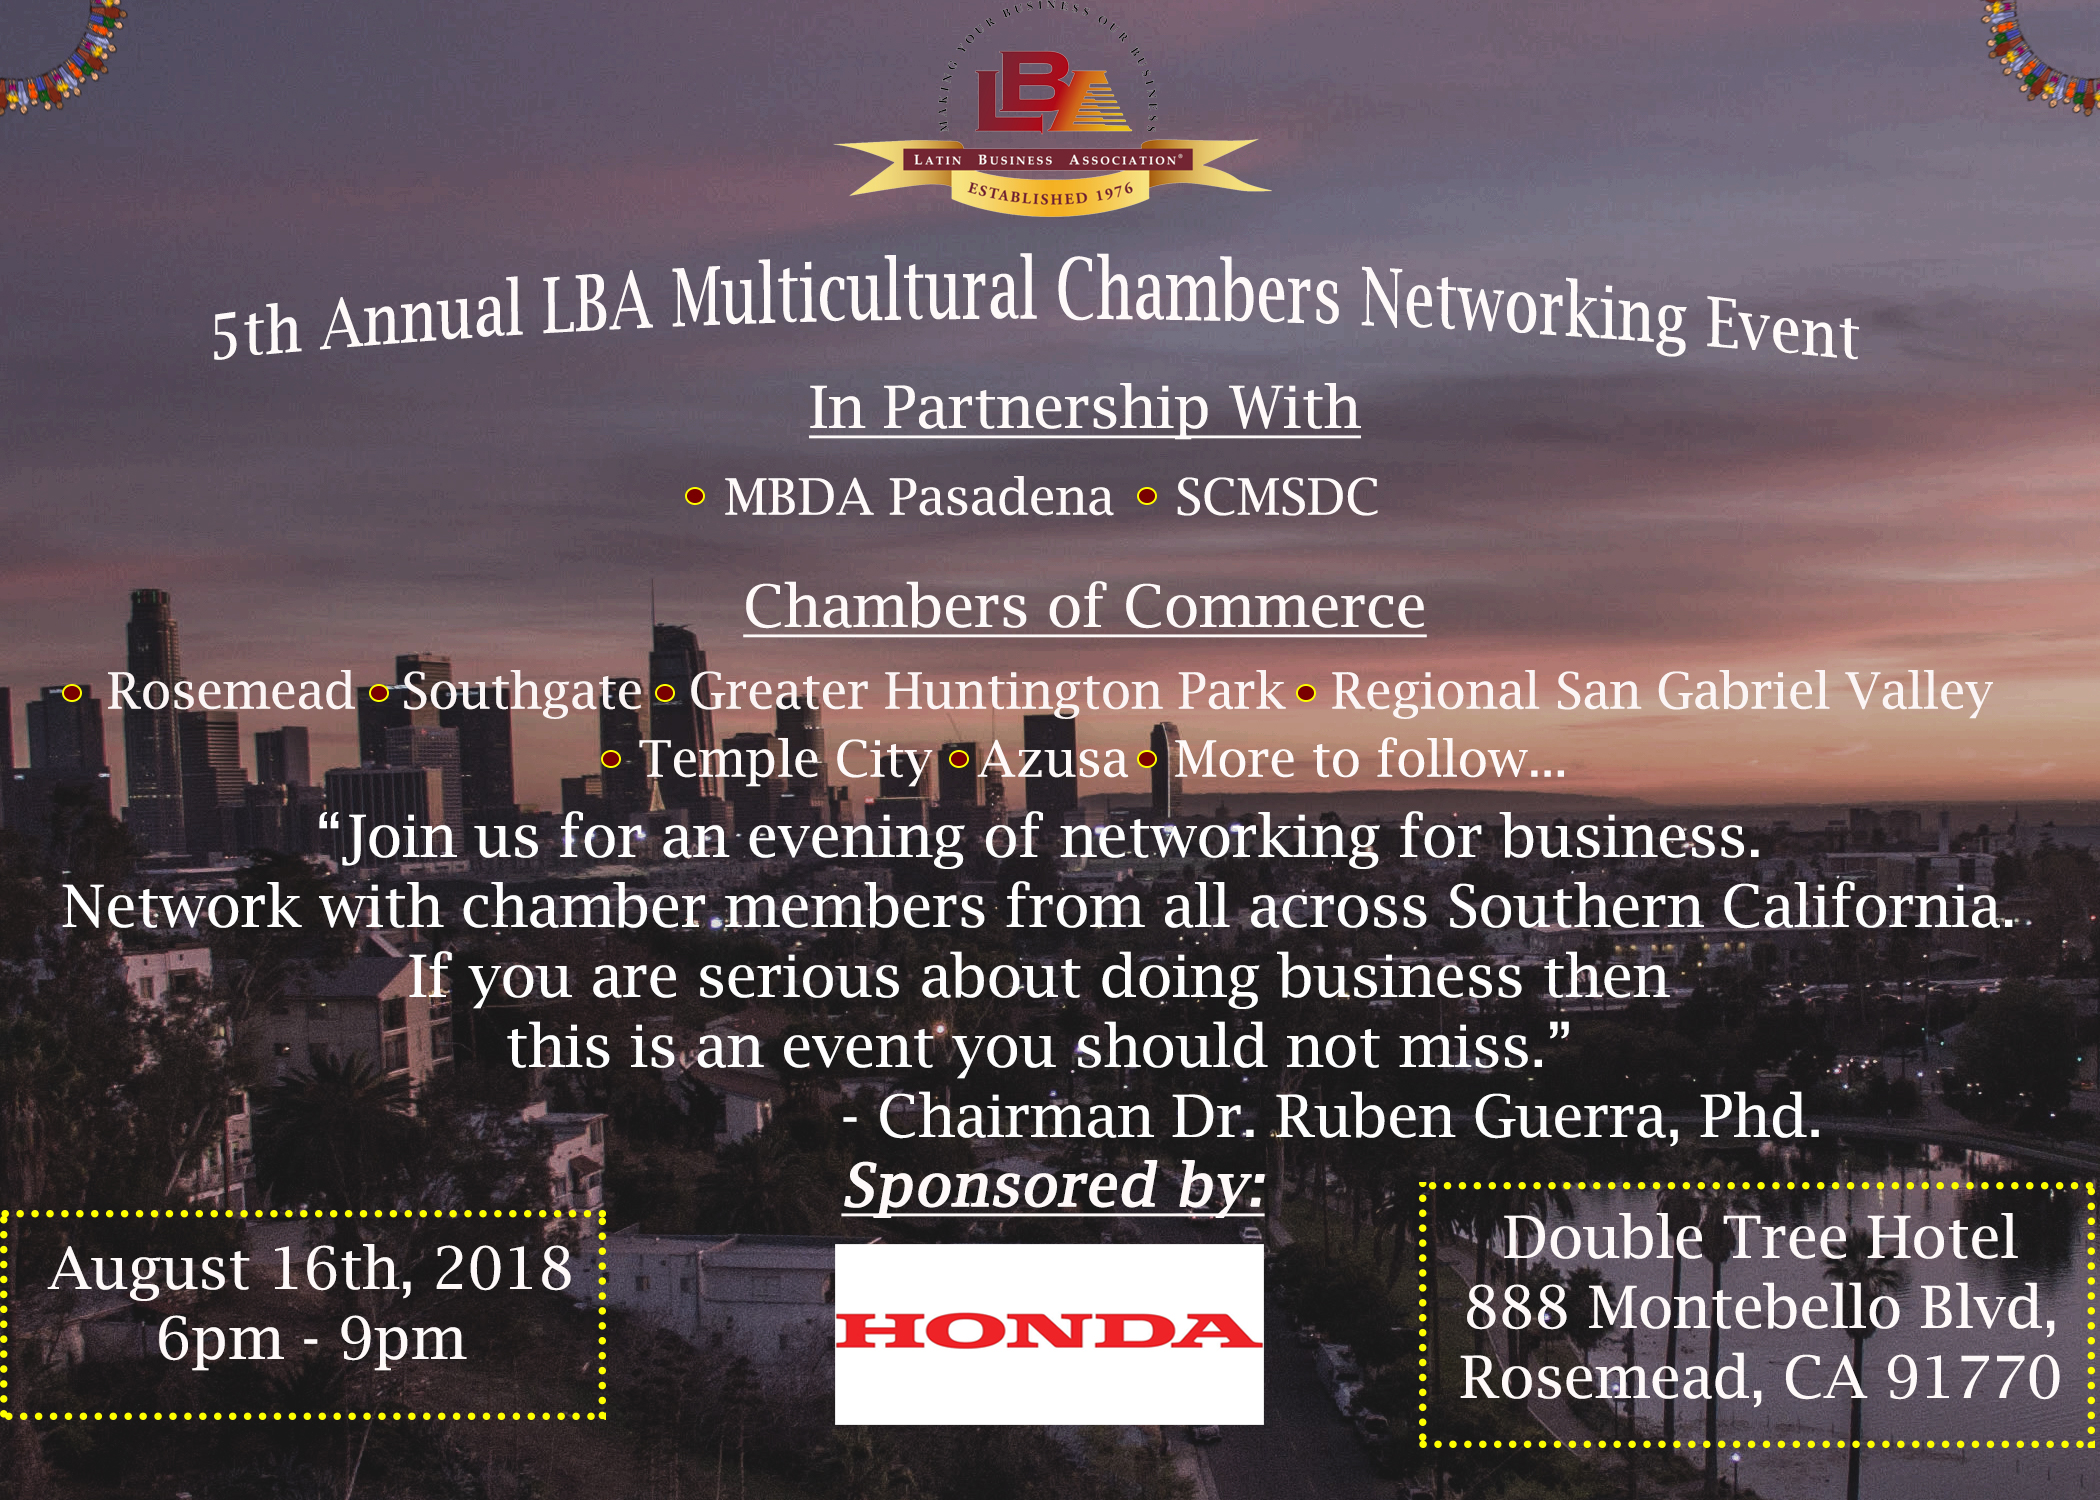 5th annual lba multicultural chambers networking event - August 16th, 2018